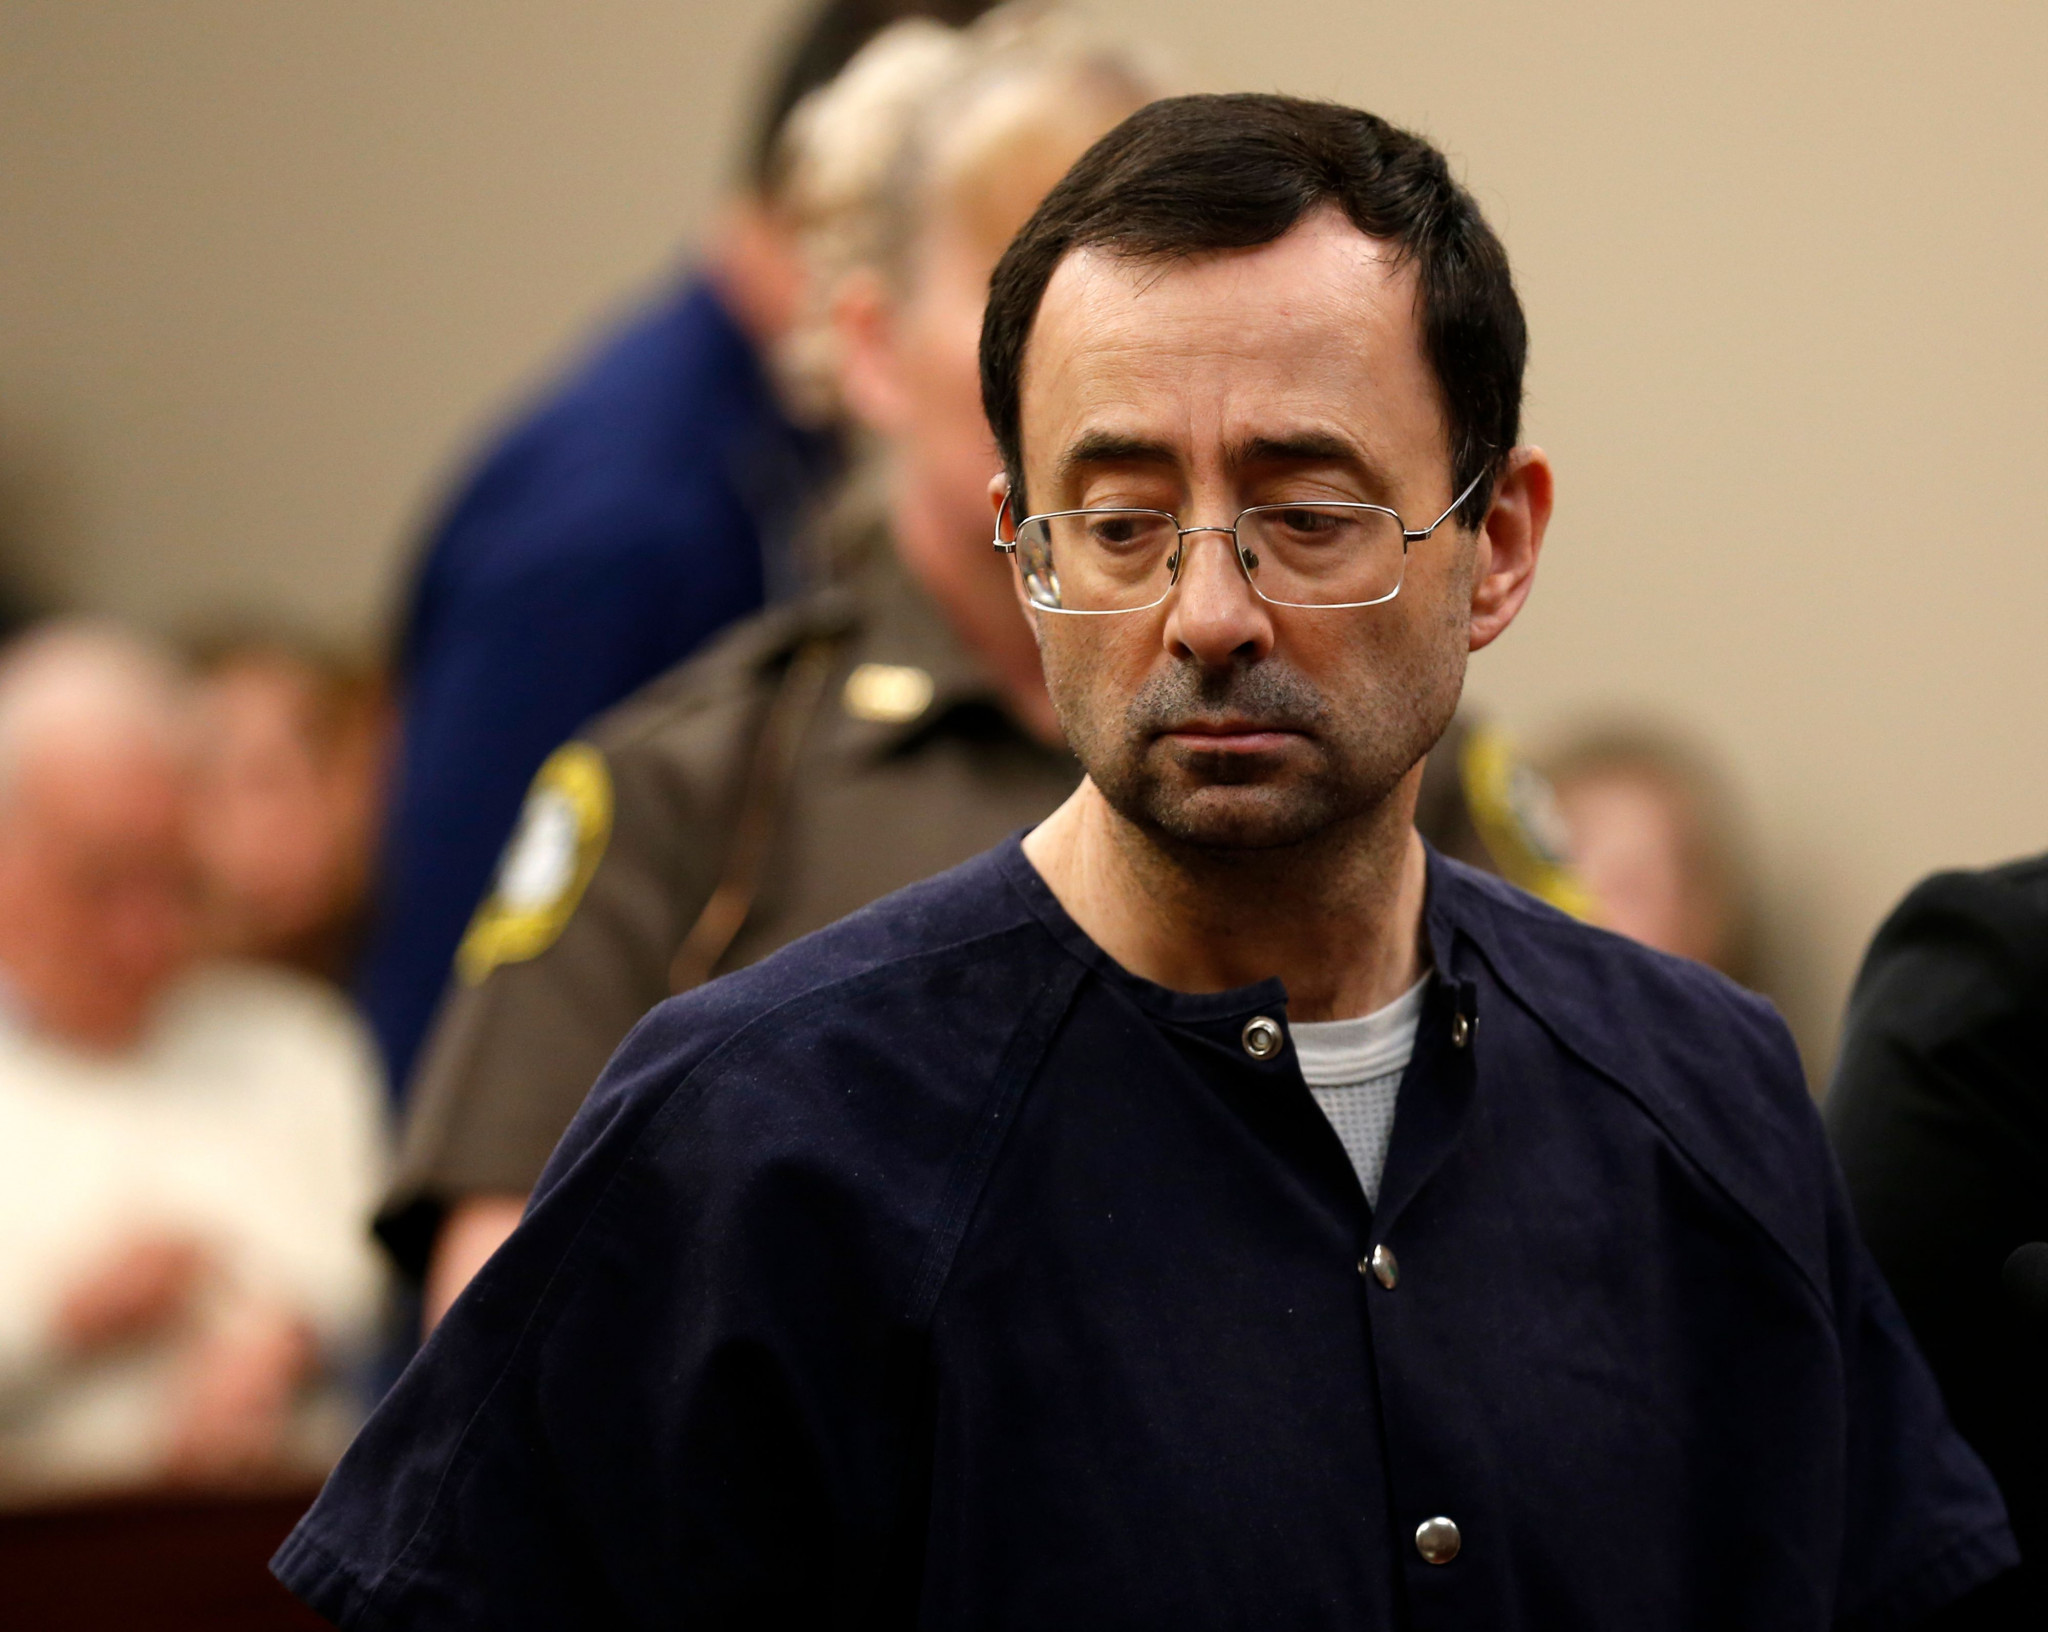 Larry Nassar has already been served a 175-year sentence for sexual abuse offences ©Getty Images